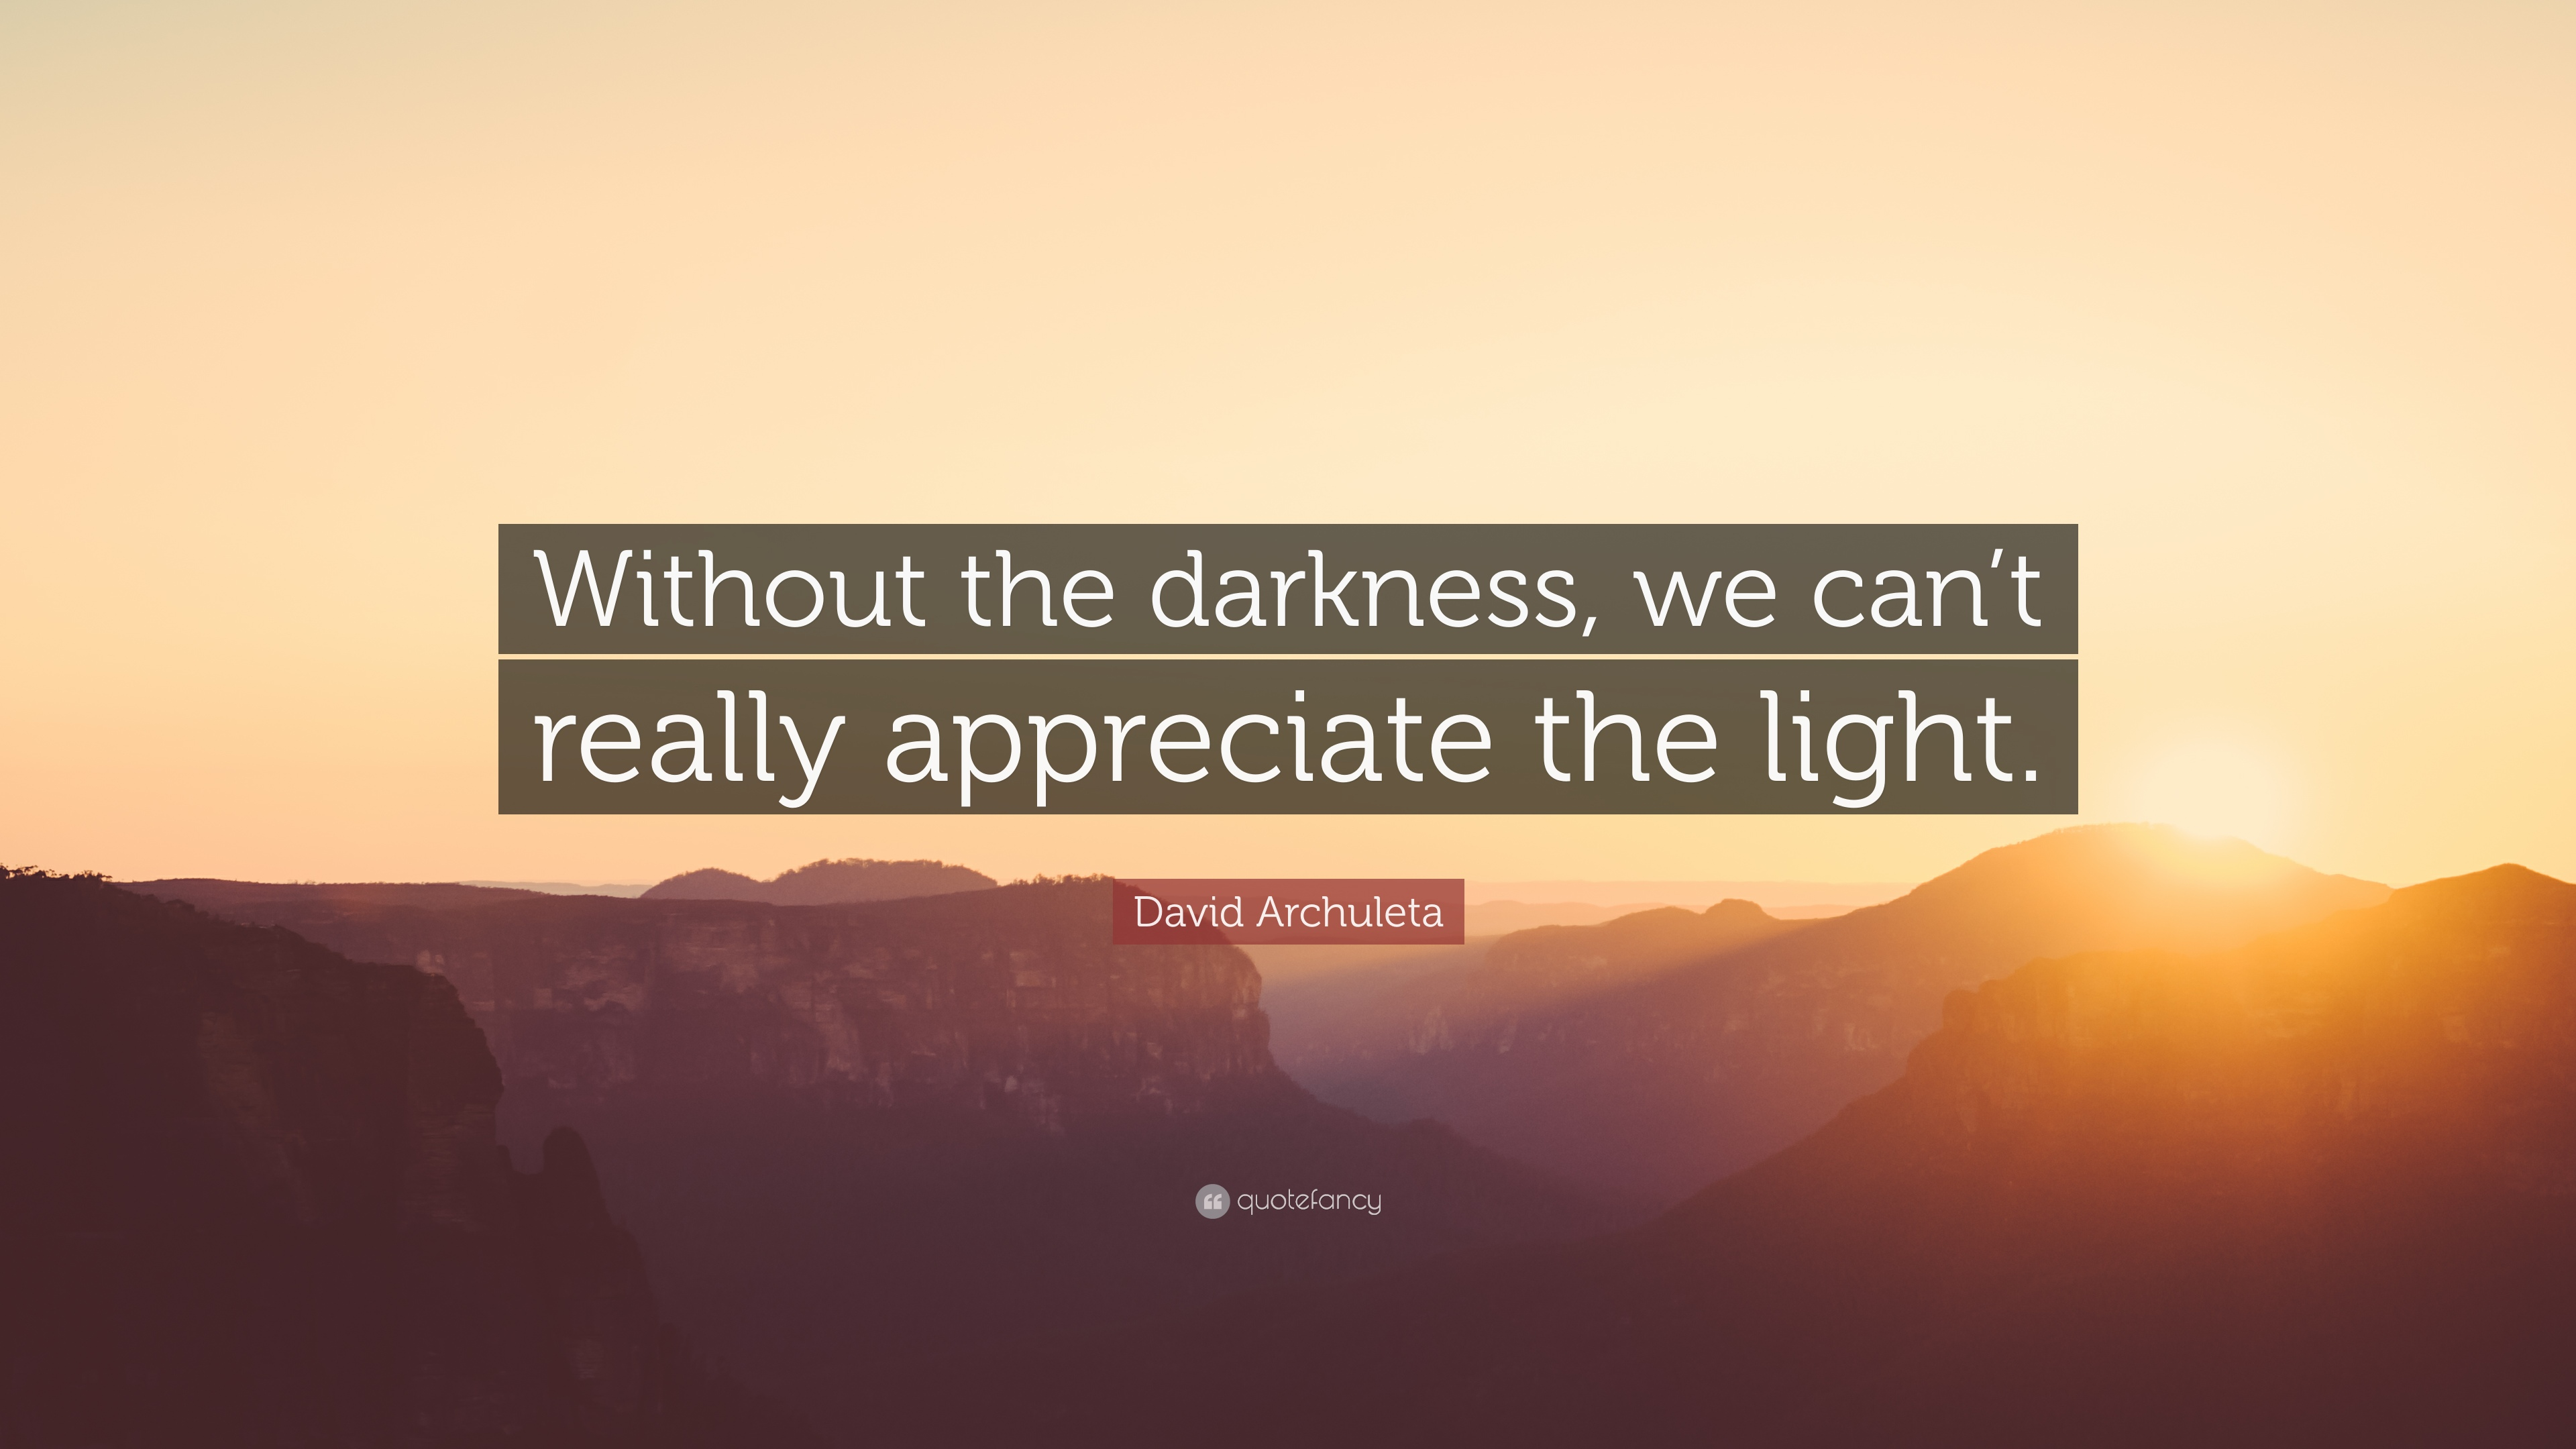 david archuleta quote without the darkness we can t really